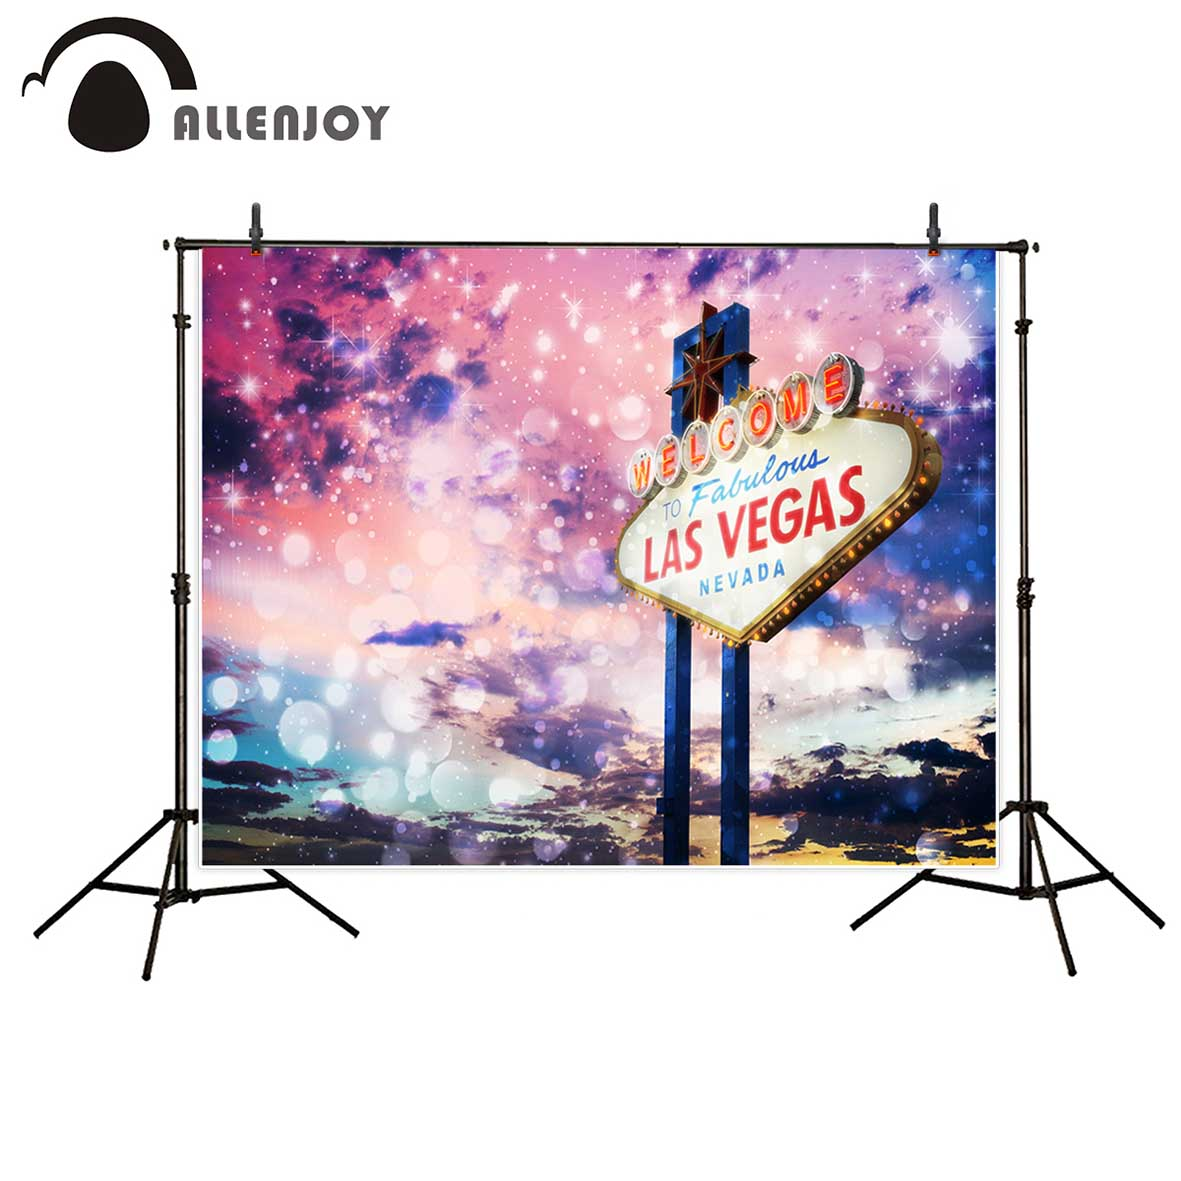 Allenjoy newborn photography background bokeh las vegas casino dream colorful backdrop photo studio photobooth high quality allenjoy photographic background las vegas casino poker clock photography fantasy send folded fabric vinyl fondos fotografia